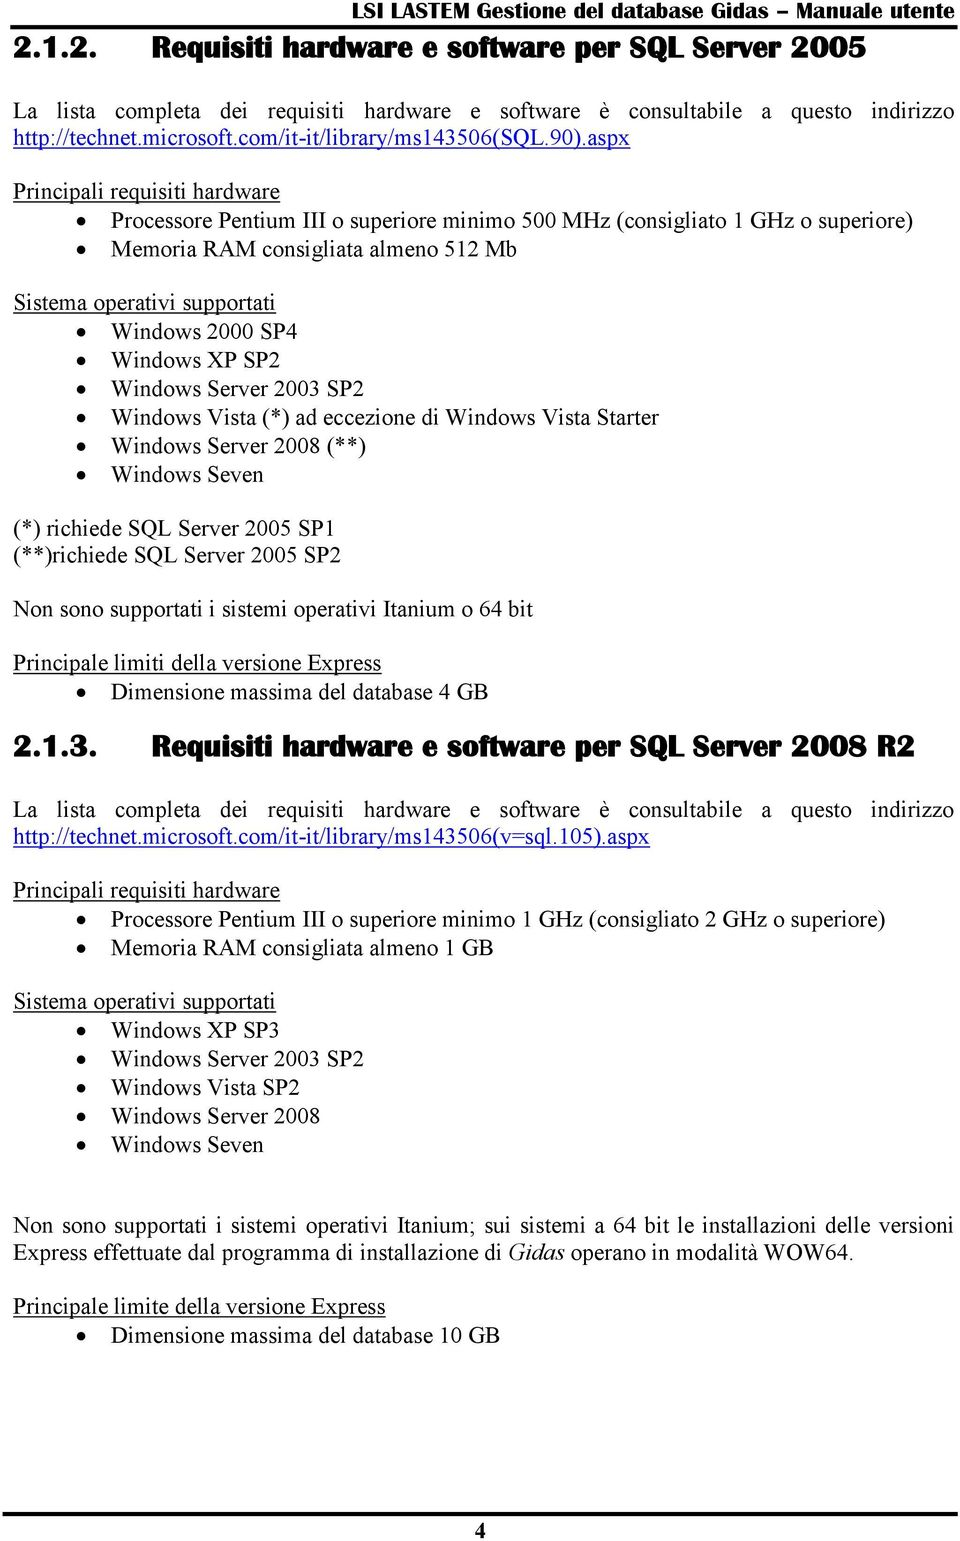 2000 SP4 Windows XP SP2 Windows Server 2003 SP2 Windows Vista (*) ad eccezione di Windows Vista Starter Windows Server 2008 (**) Windows Seven (*) richiede SQL Server 2005 SP1 (**)richiede SQL Server